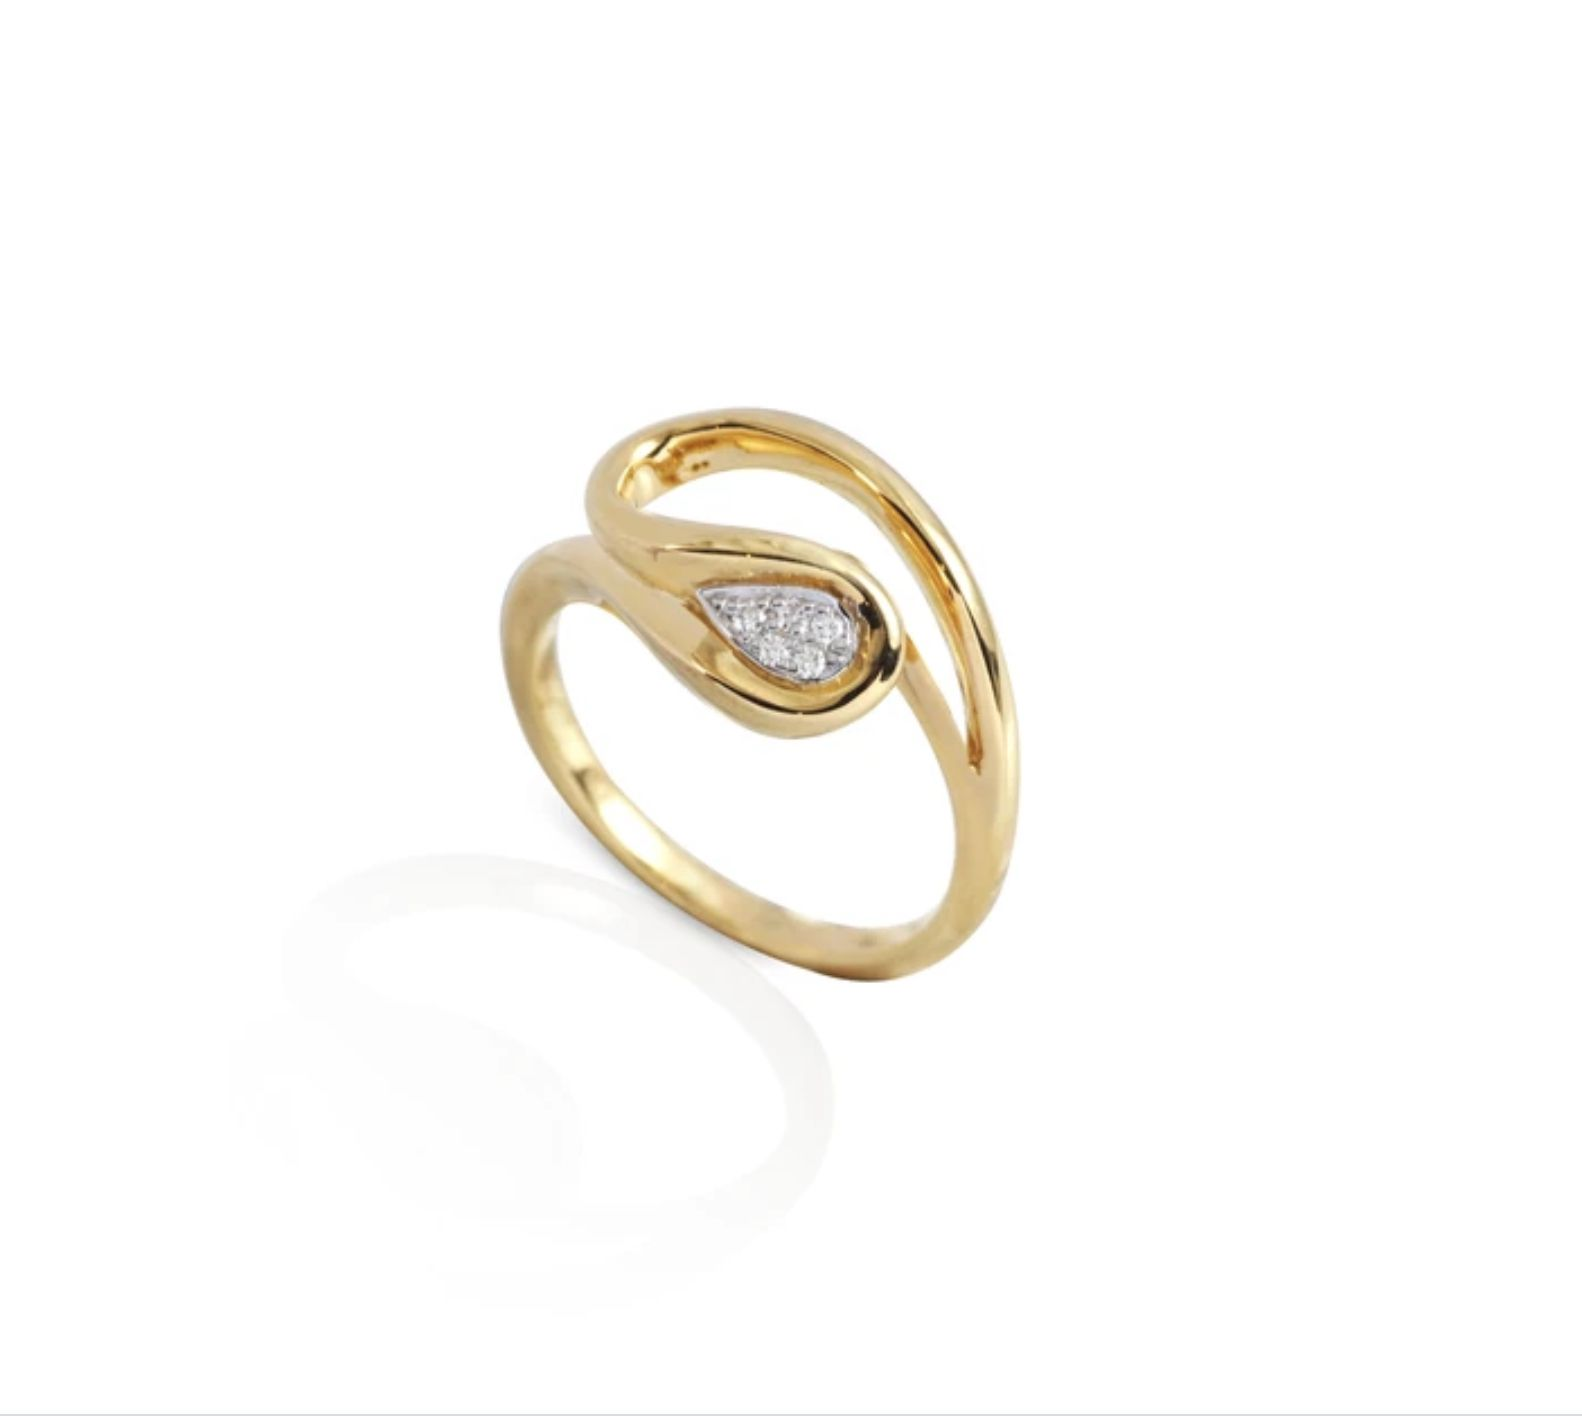 Diamond engagement ring with yellow gold band on a white background.